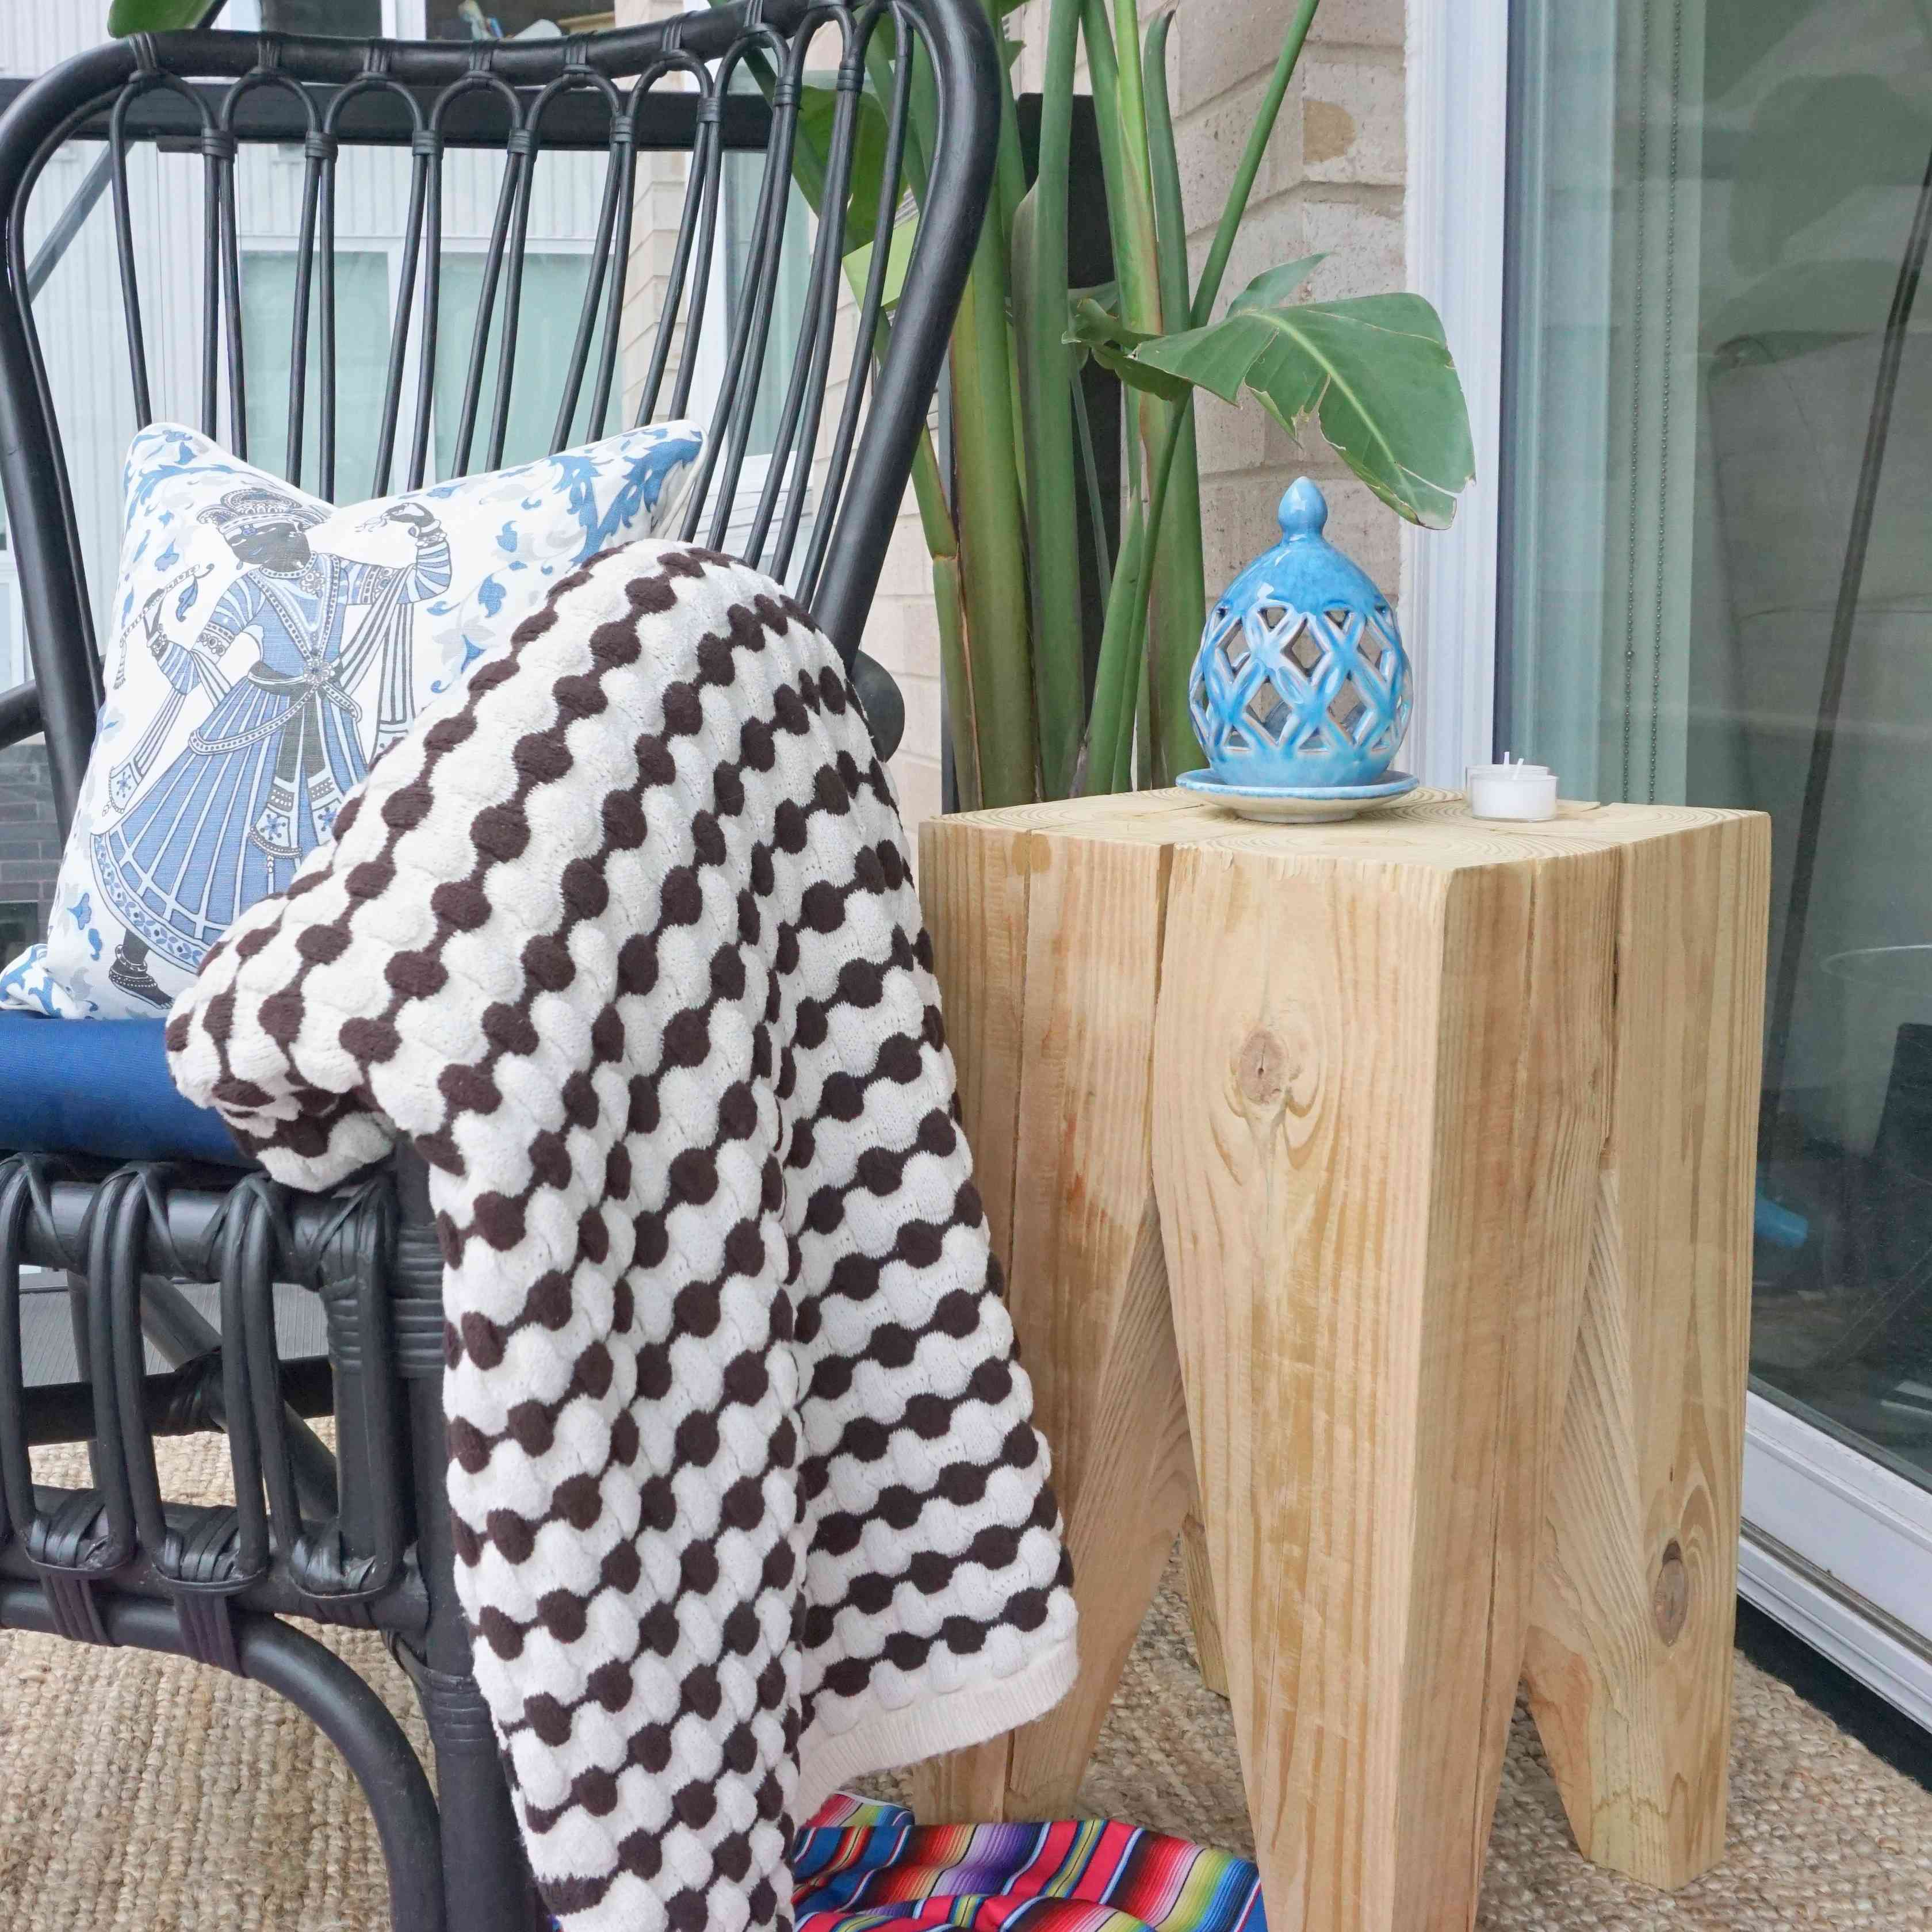 A wooden side table on a porch